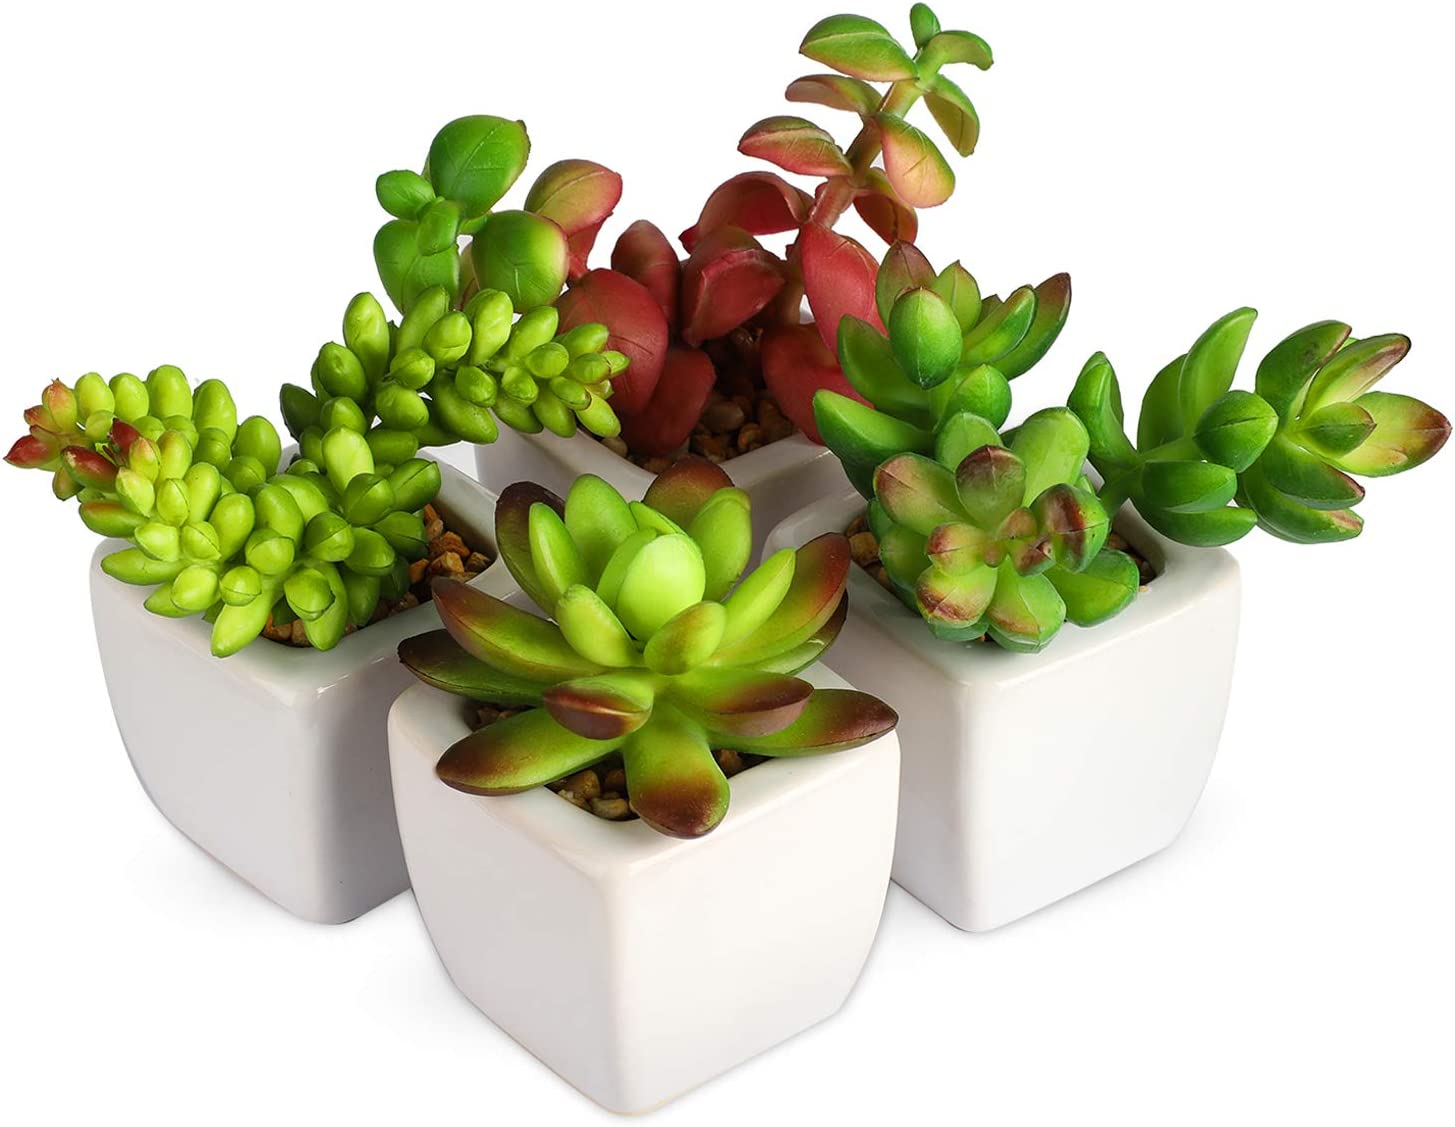 Myartte Home Decor Office Decor-Artificial Shrubs Artificial Succulent Plants Mini Fake Plants for Beautifying Our Life and Home Environment (White C)